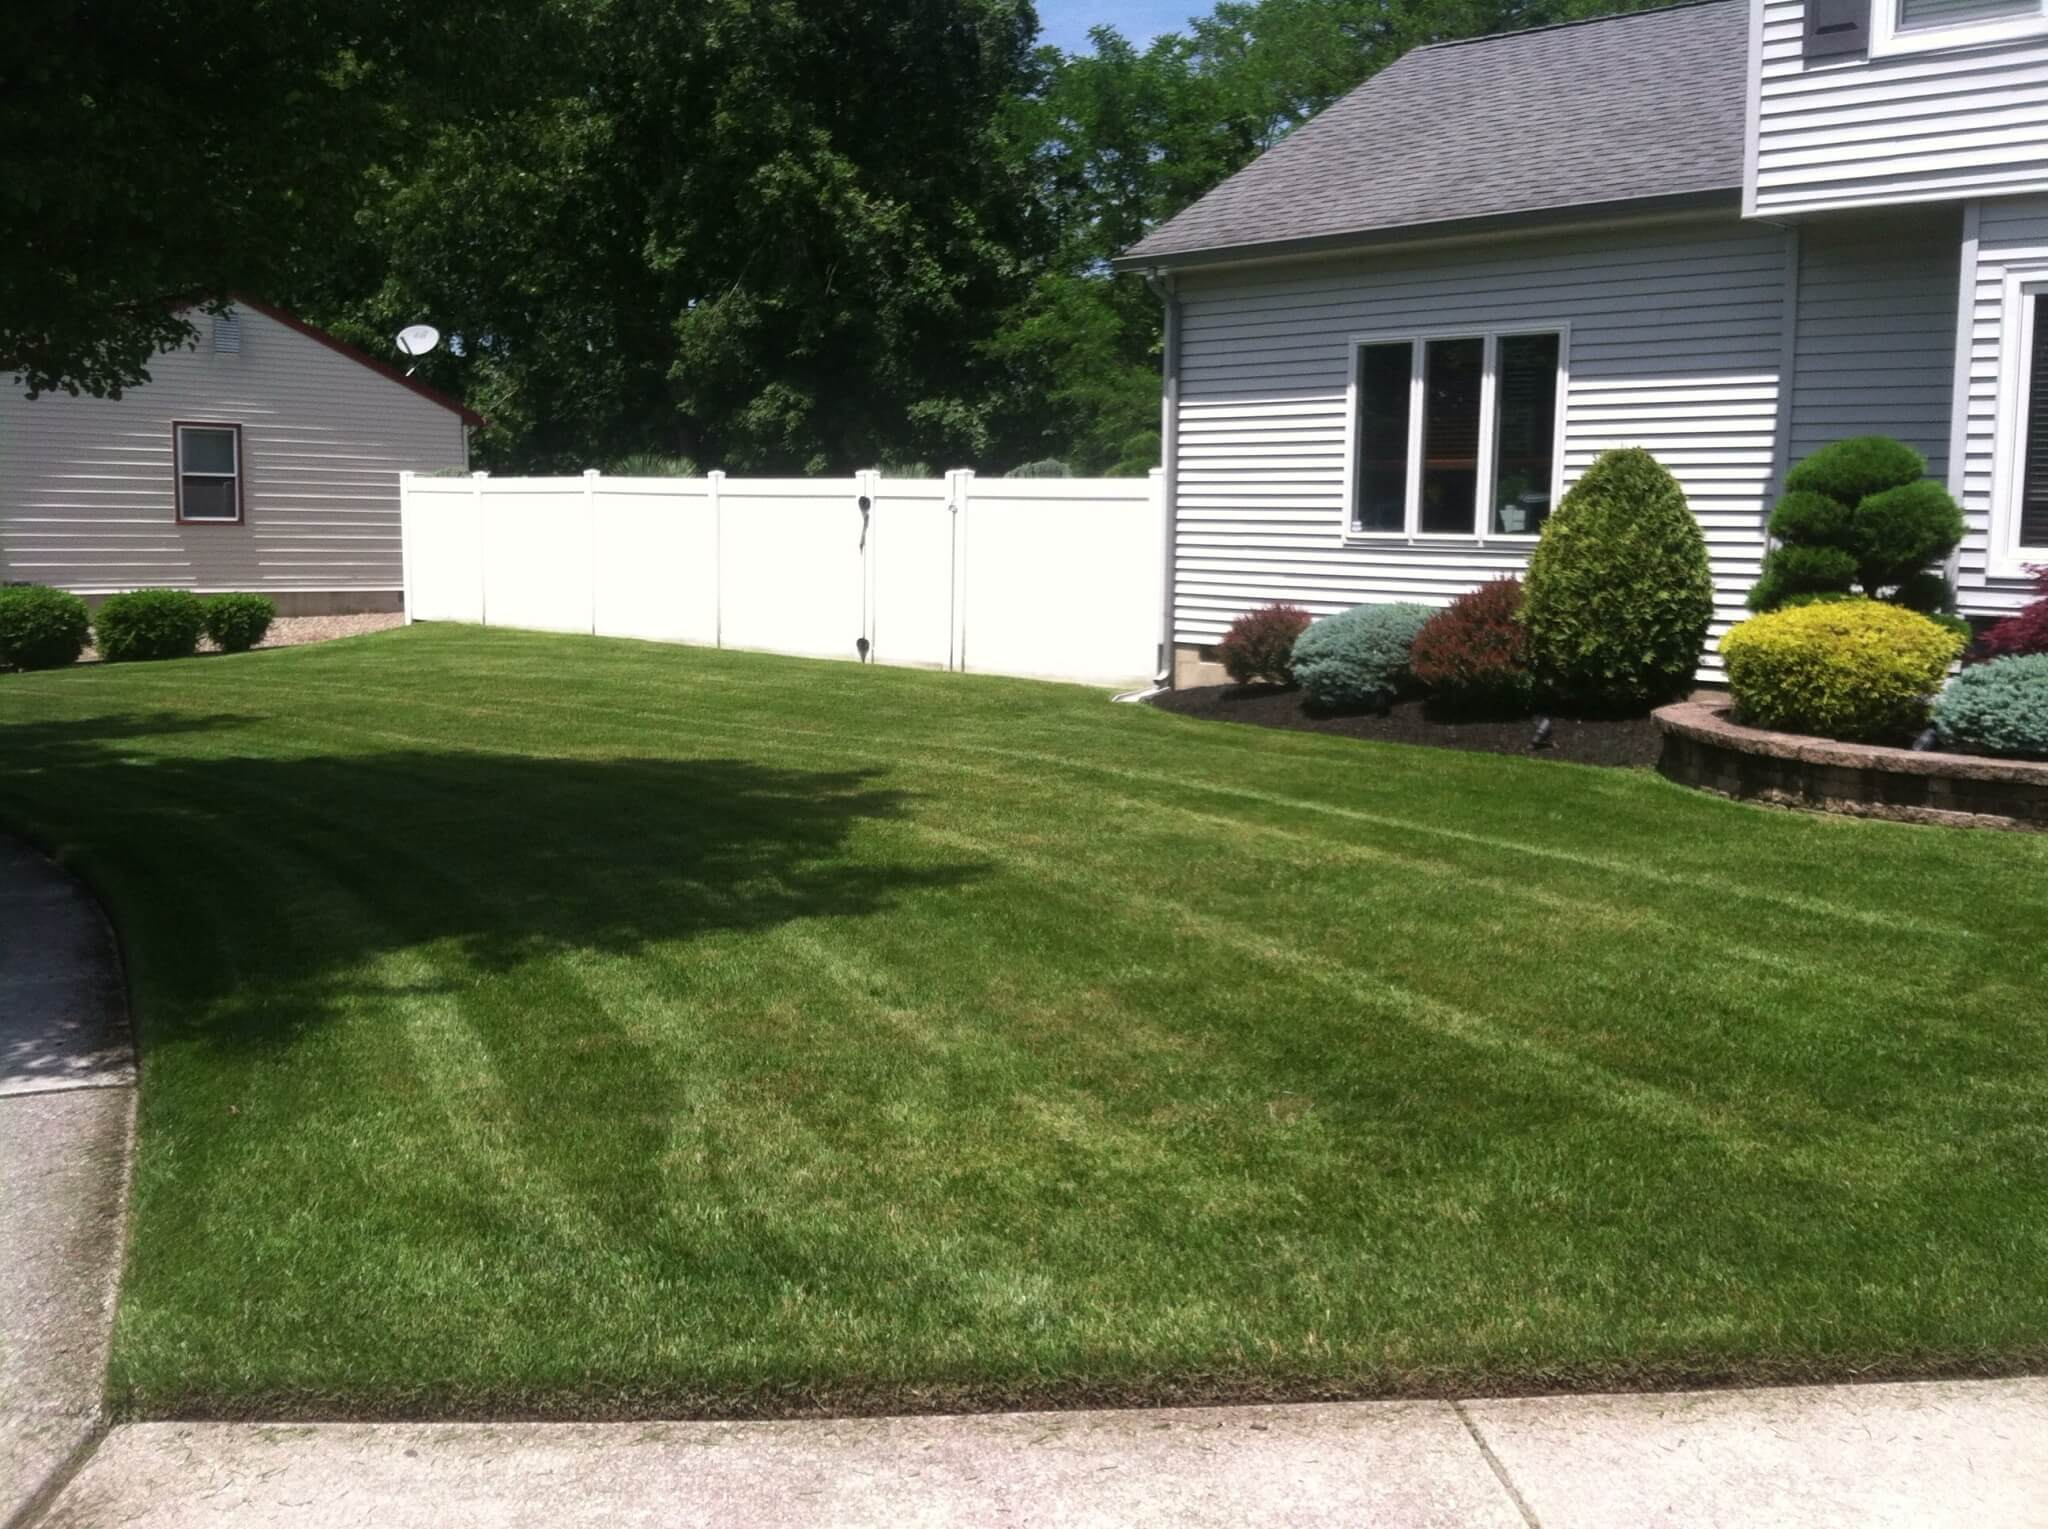 Photo Gallery - Sunshine Lawn Care LLC